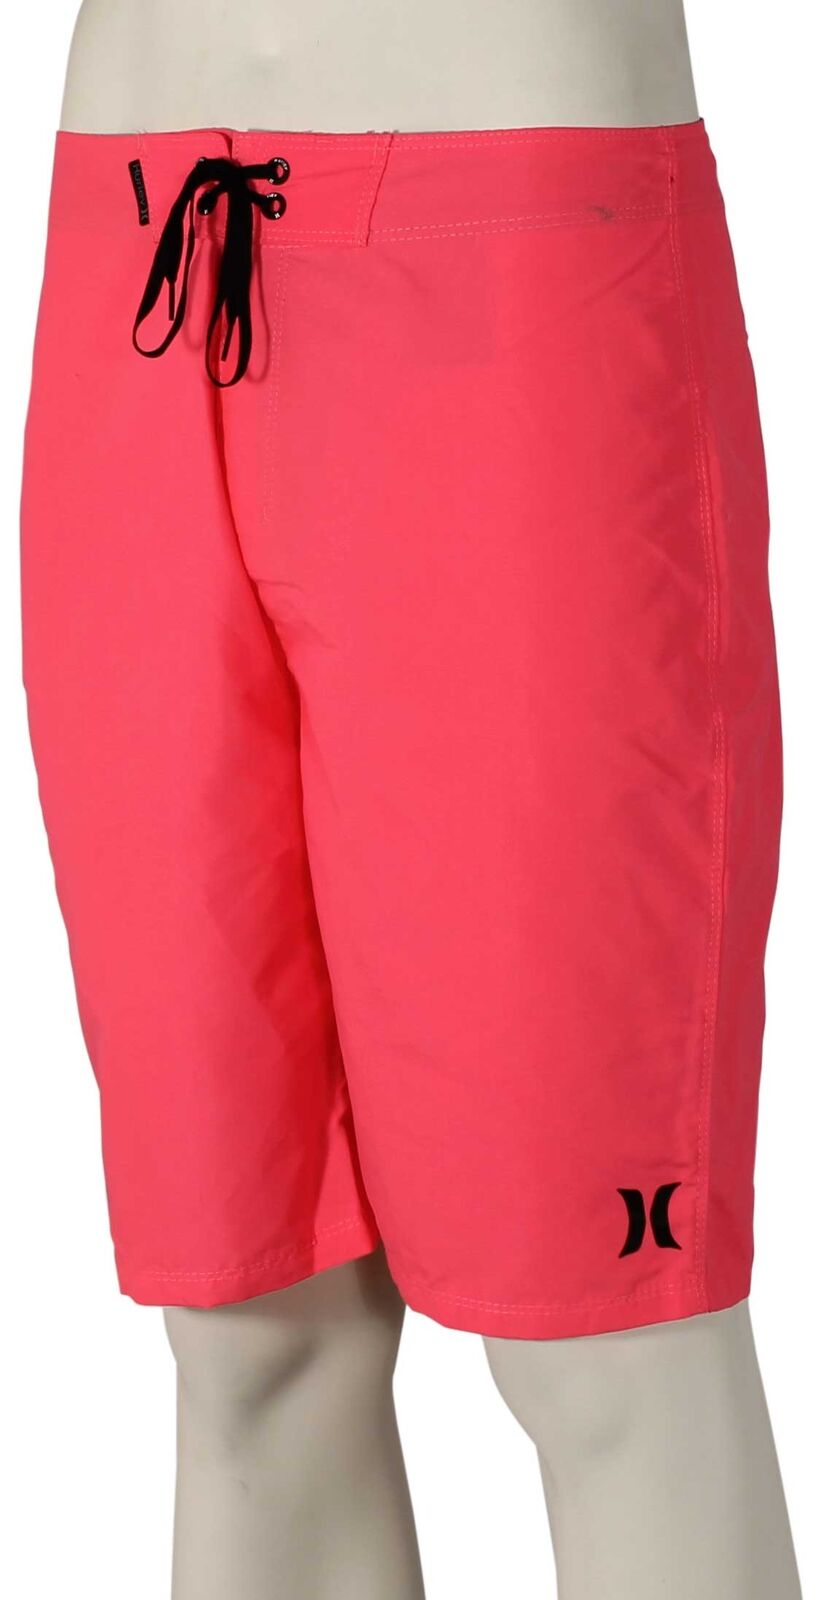 d5cc82fd37 Hurley Icon Mens Shorts Boardshorts - HYPER Pink All Sizes 34 Inch ...